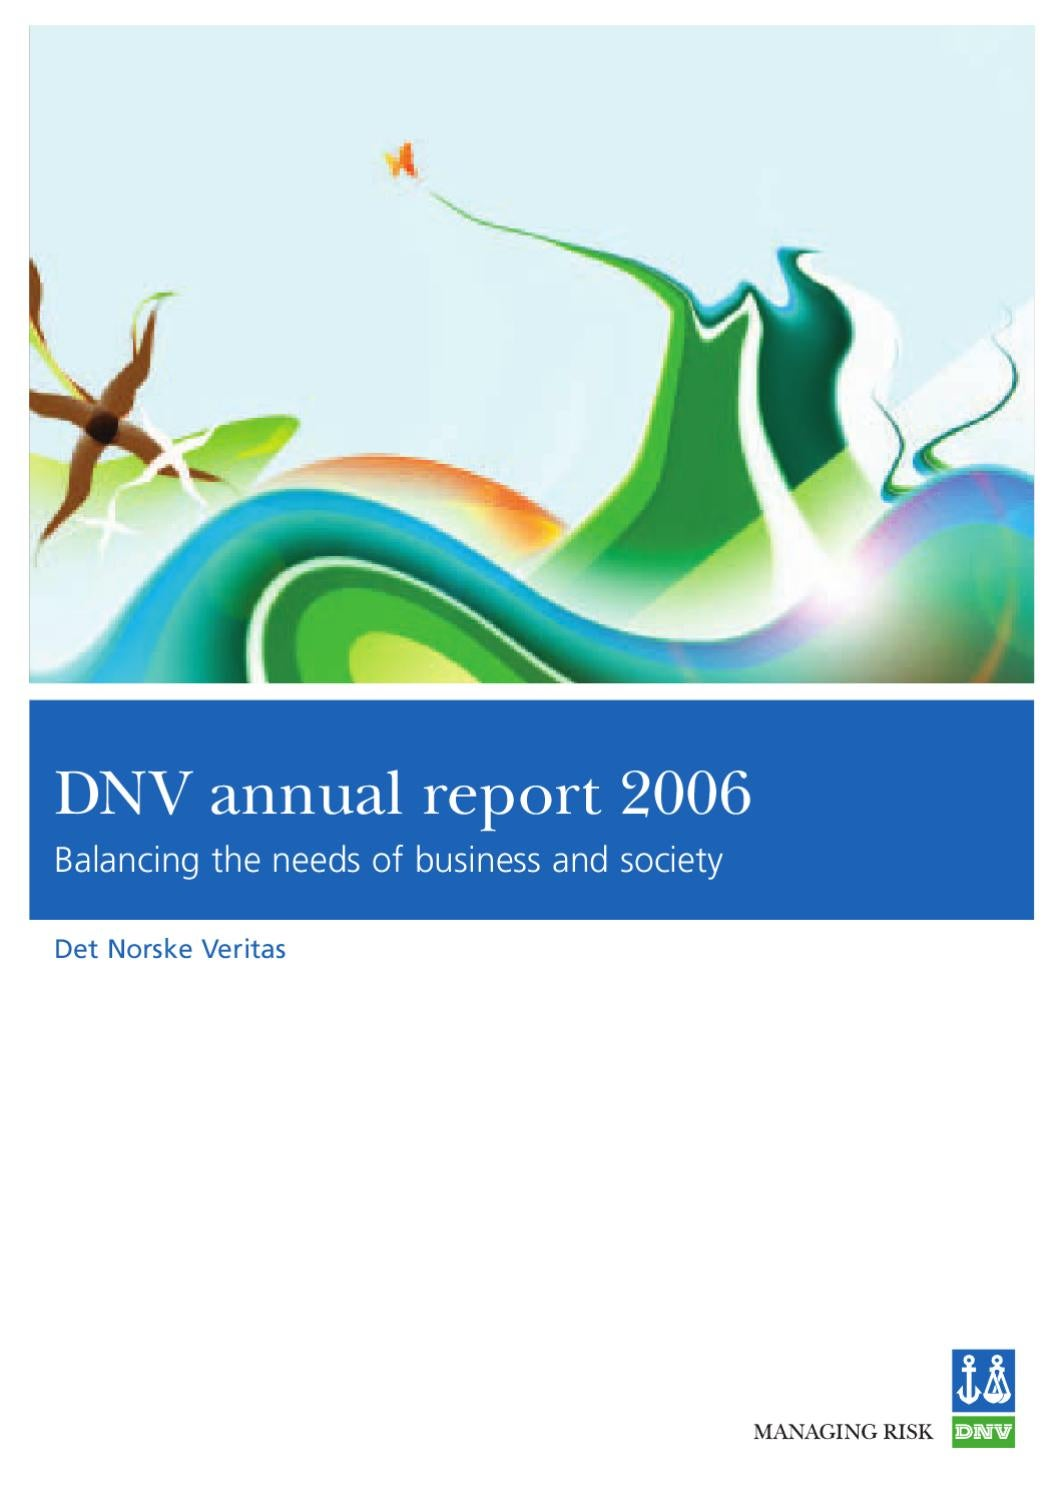 DNV annual report 2006 by DNV GL (old account) - issuu